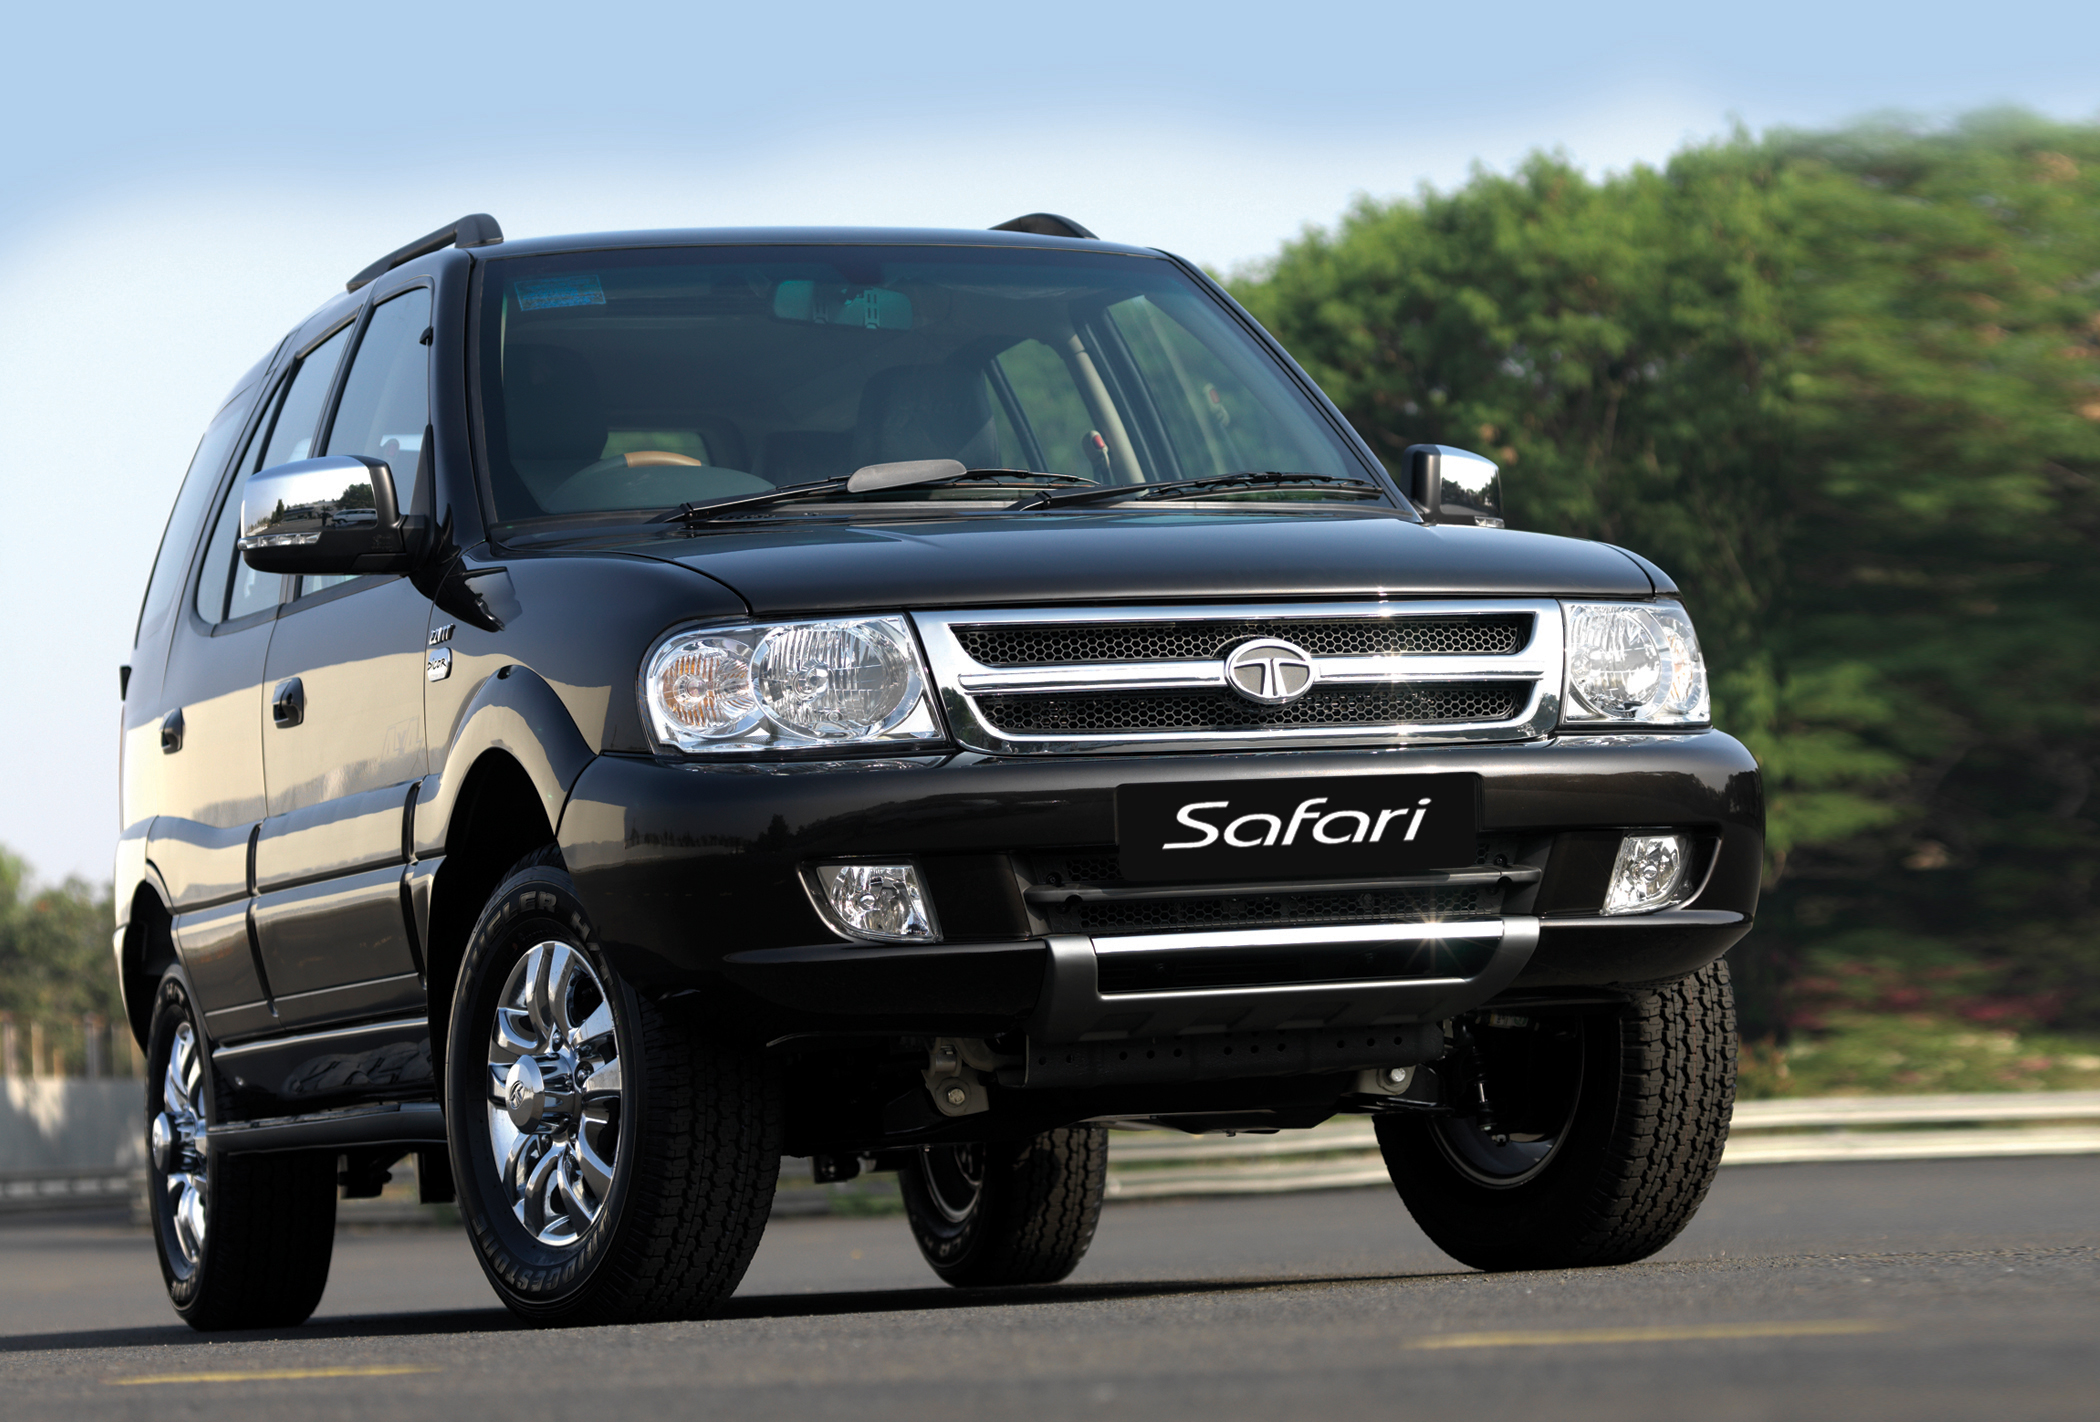 Tata Safari #4